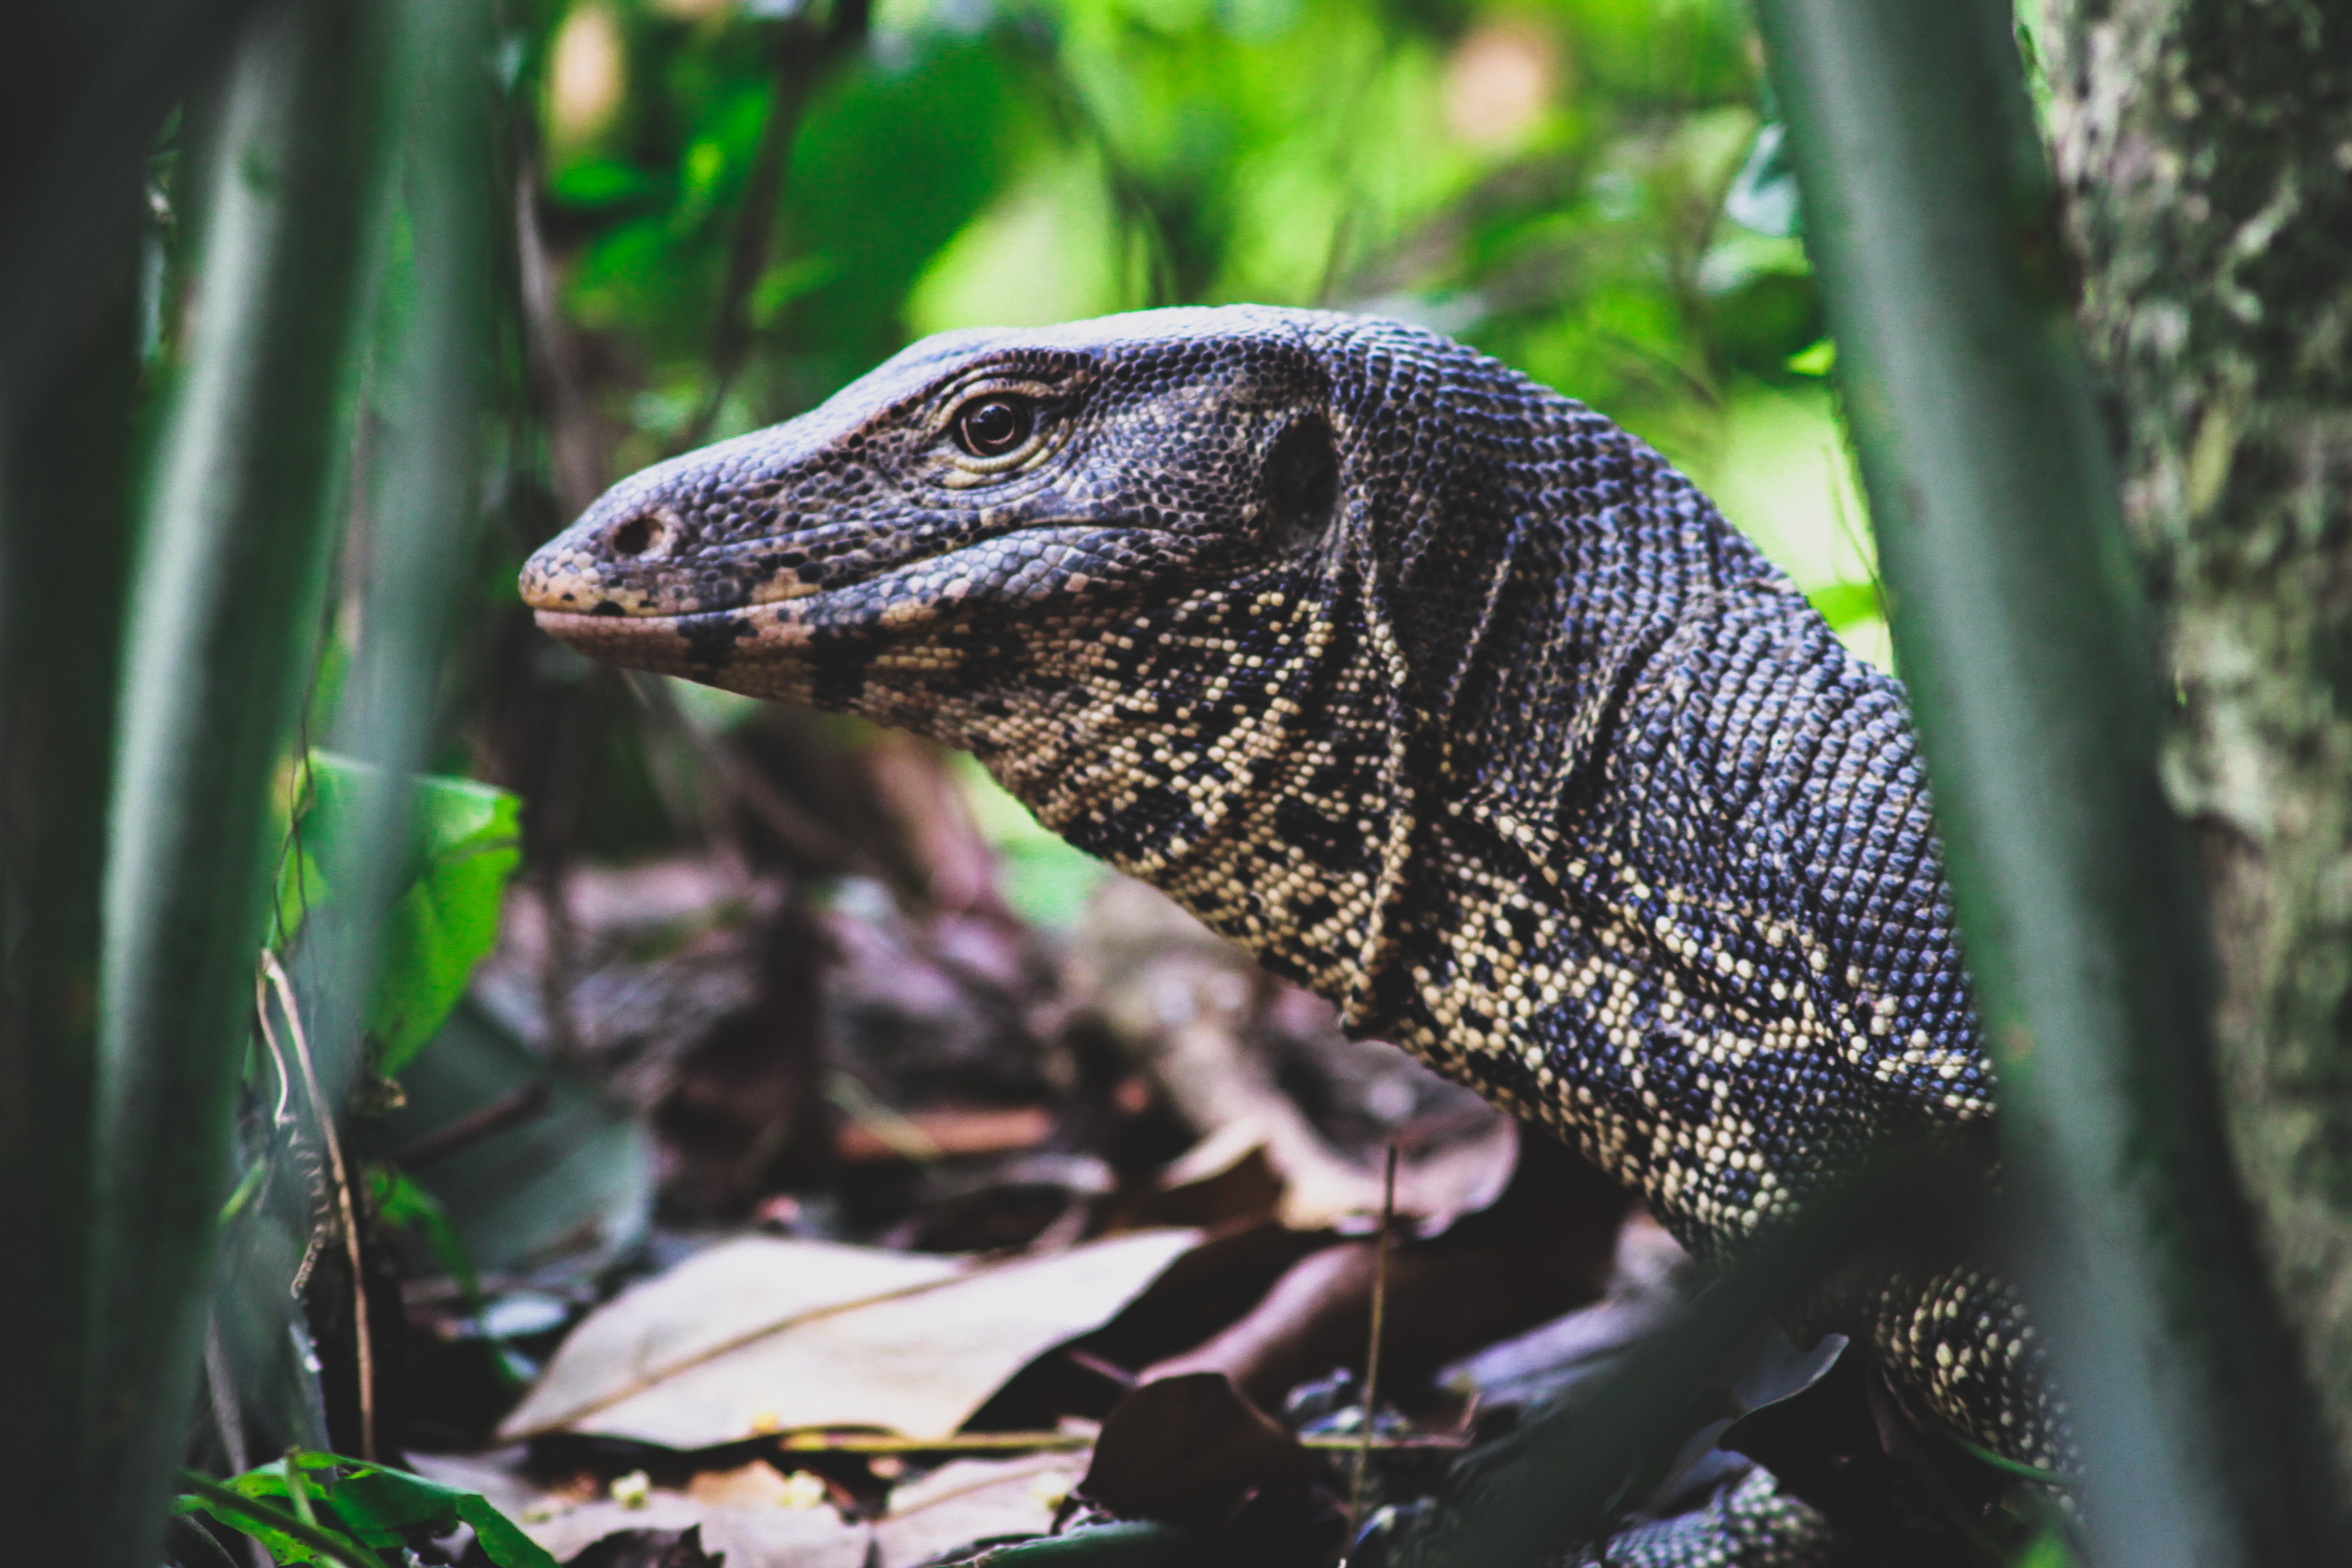 Black and Beige Monitor Lizard on Woods